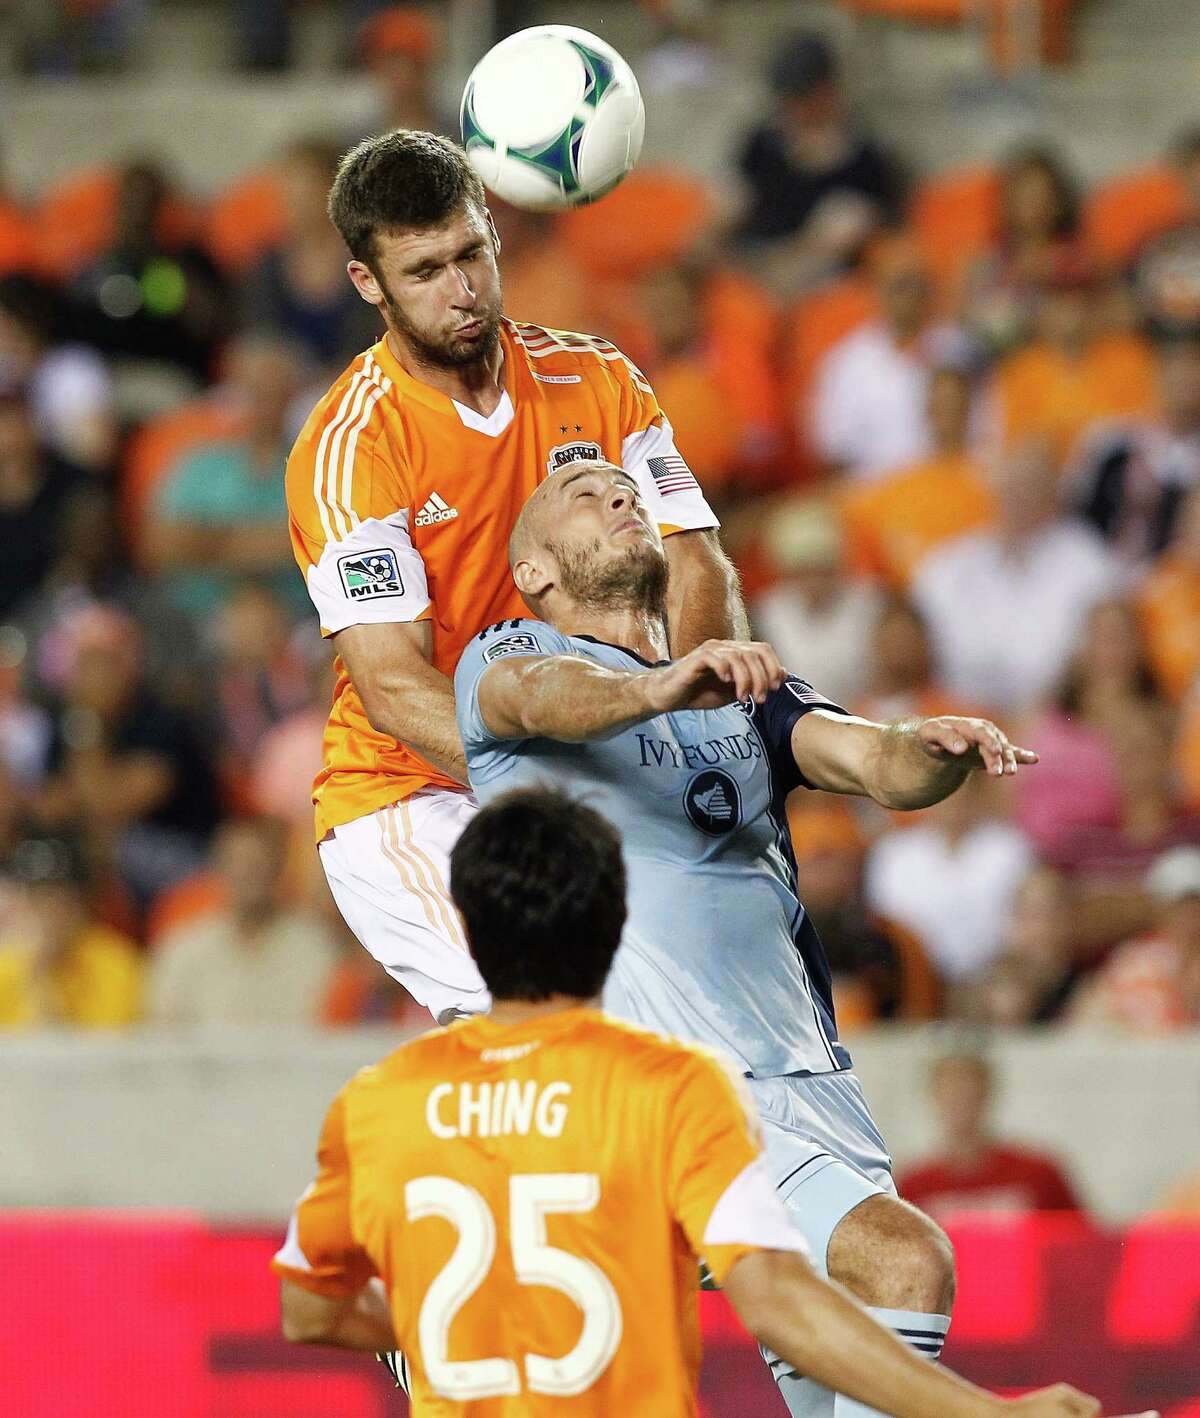 Sporting KC 1, Dynamo 0 Houston Dynamo forward Will Bruin #12 goes up over Sporting KC defender Aurelien Collin #78 for a header as Houston Dynamo forward Brian Ching #25 looks for a rebound in the second half during a MLS soccer match between the Houston Dynamo and the Sporting KC, Sunday May 12, 2013. KC defeated Houston 1-0. (Bob Levey/For The Chronicle)